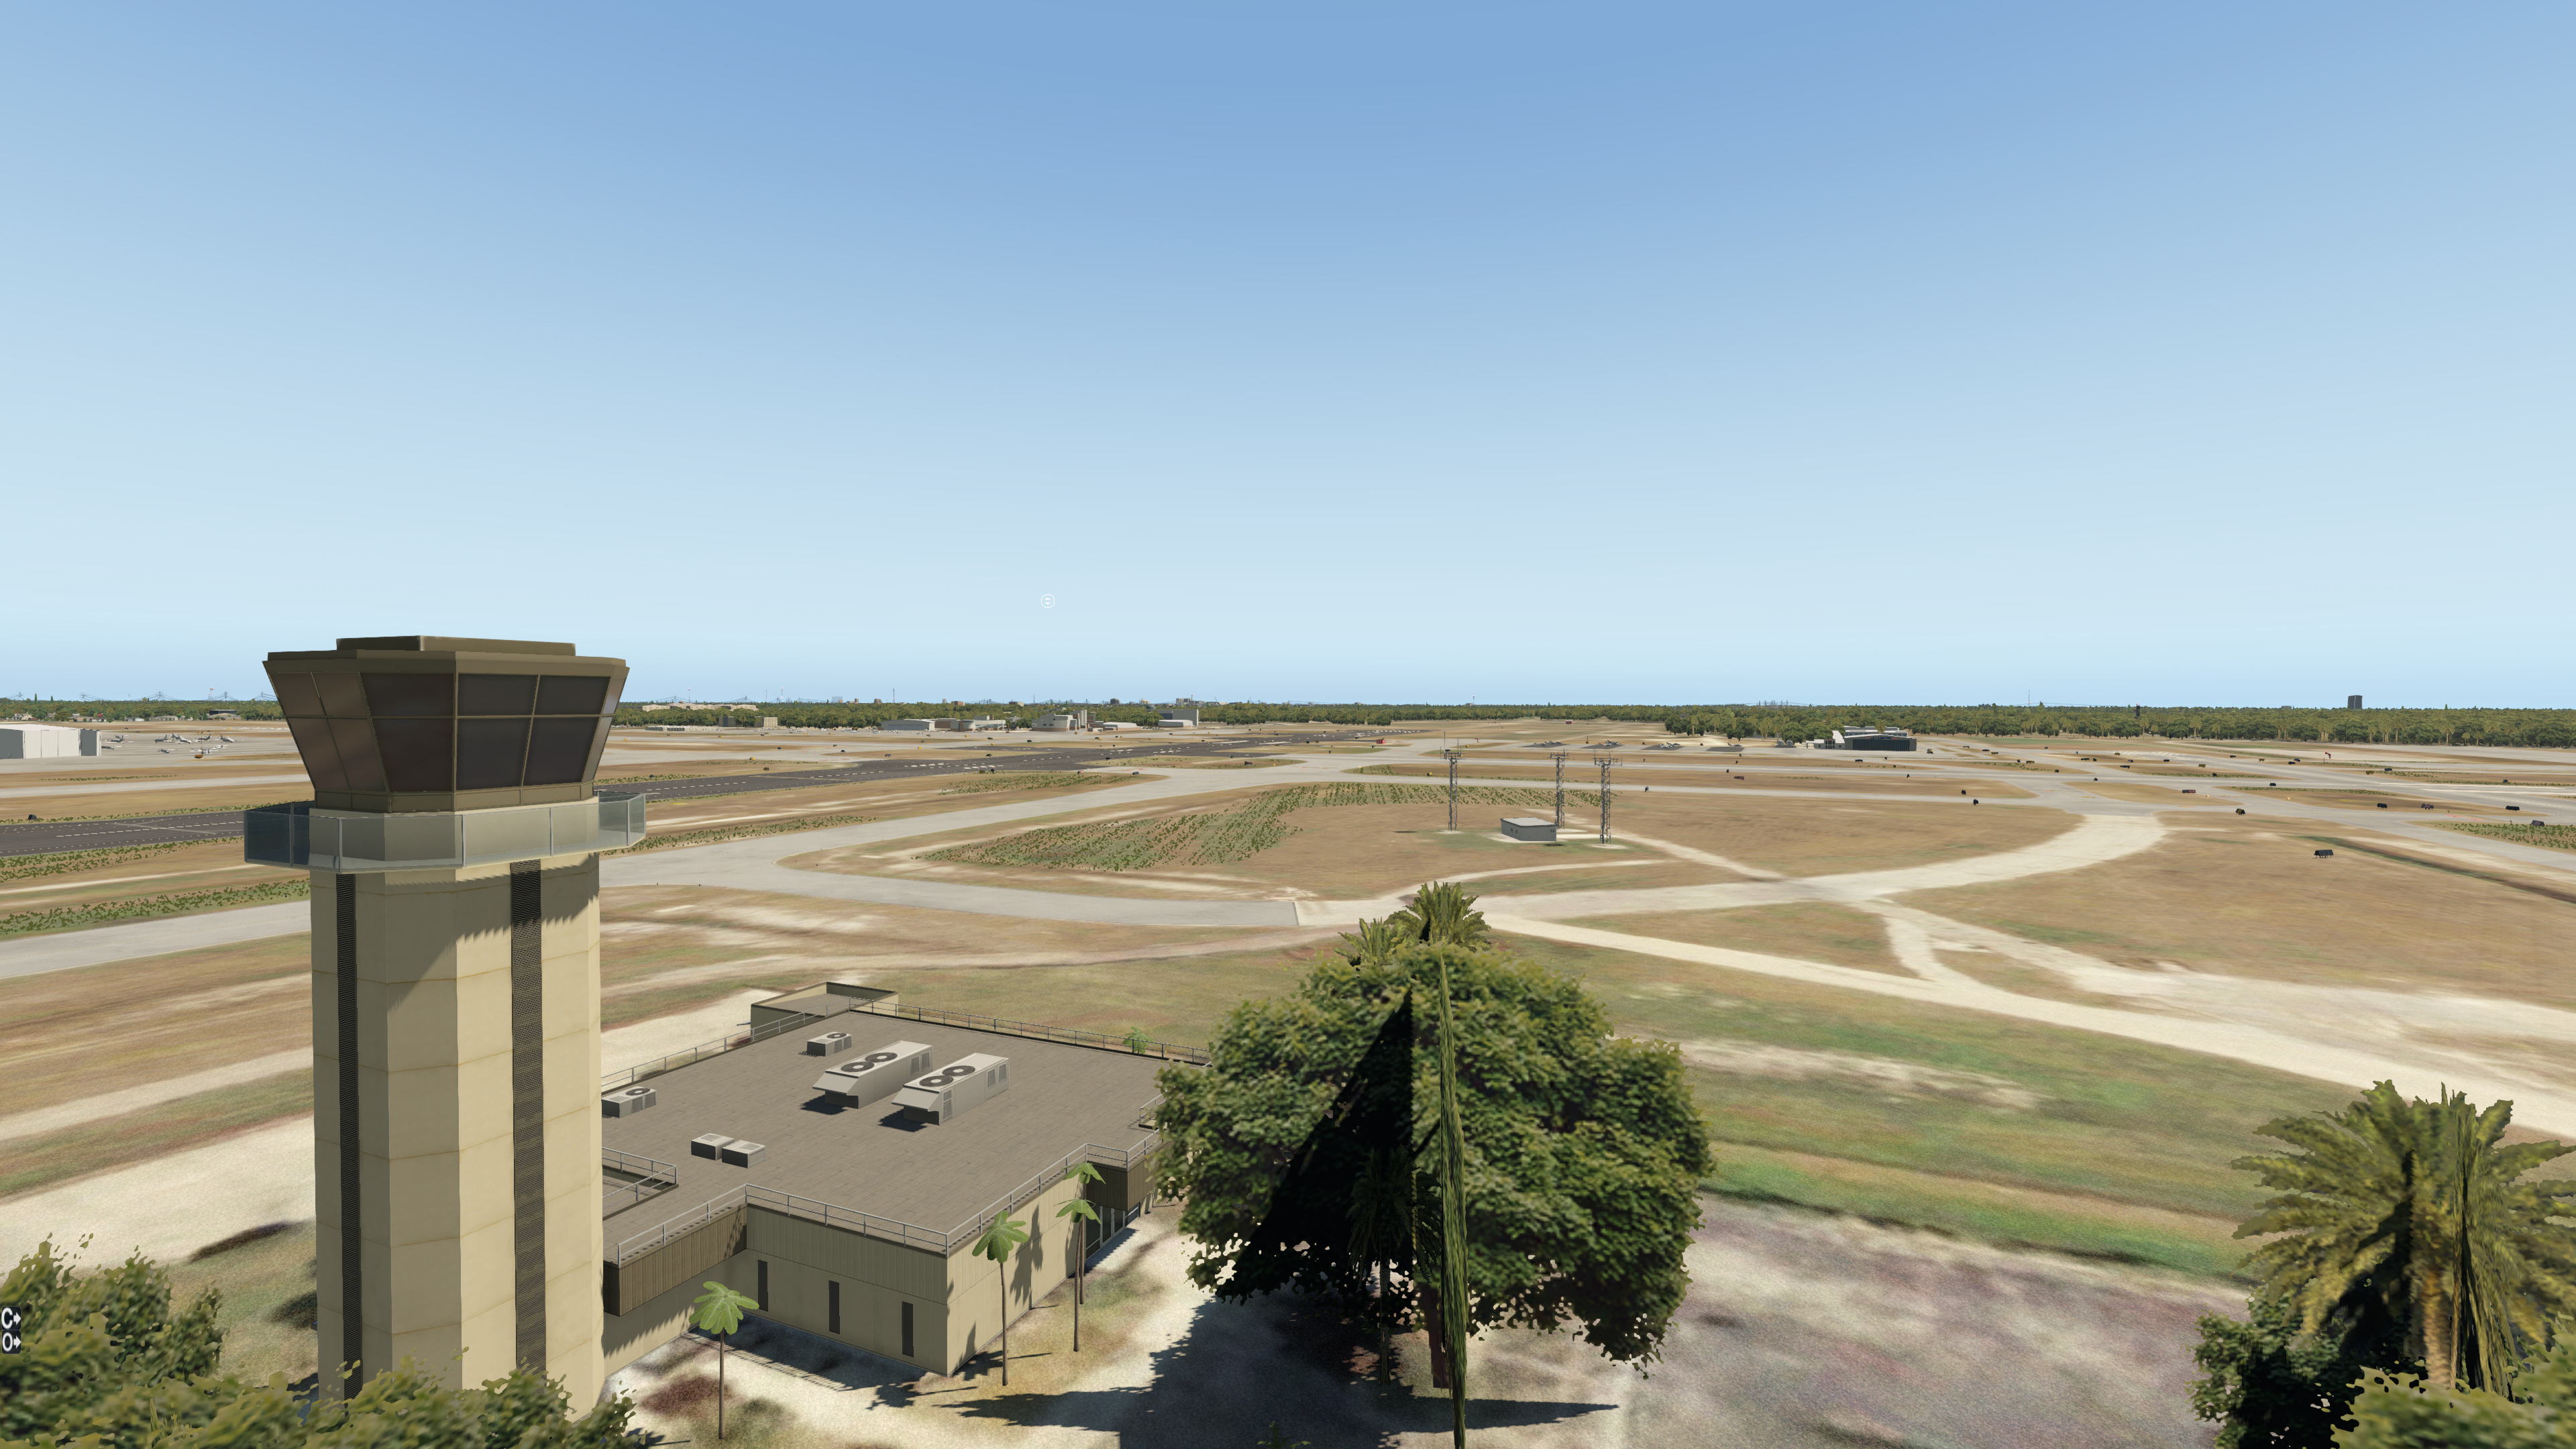 AEROSOFT - DAYTONA BEACH INTERNATIONAL XP X-PLANE 11